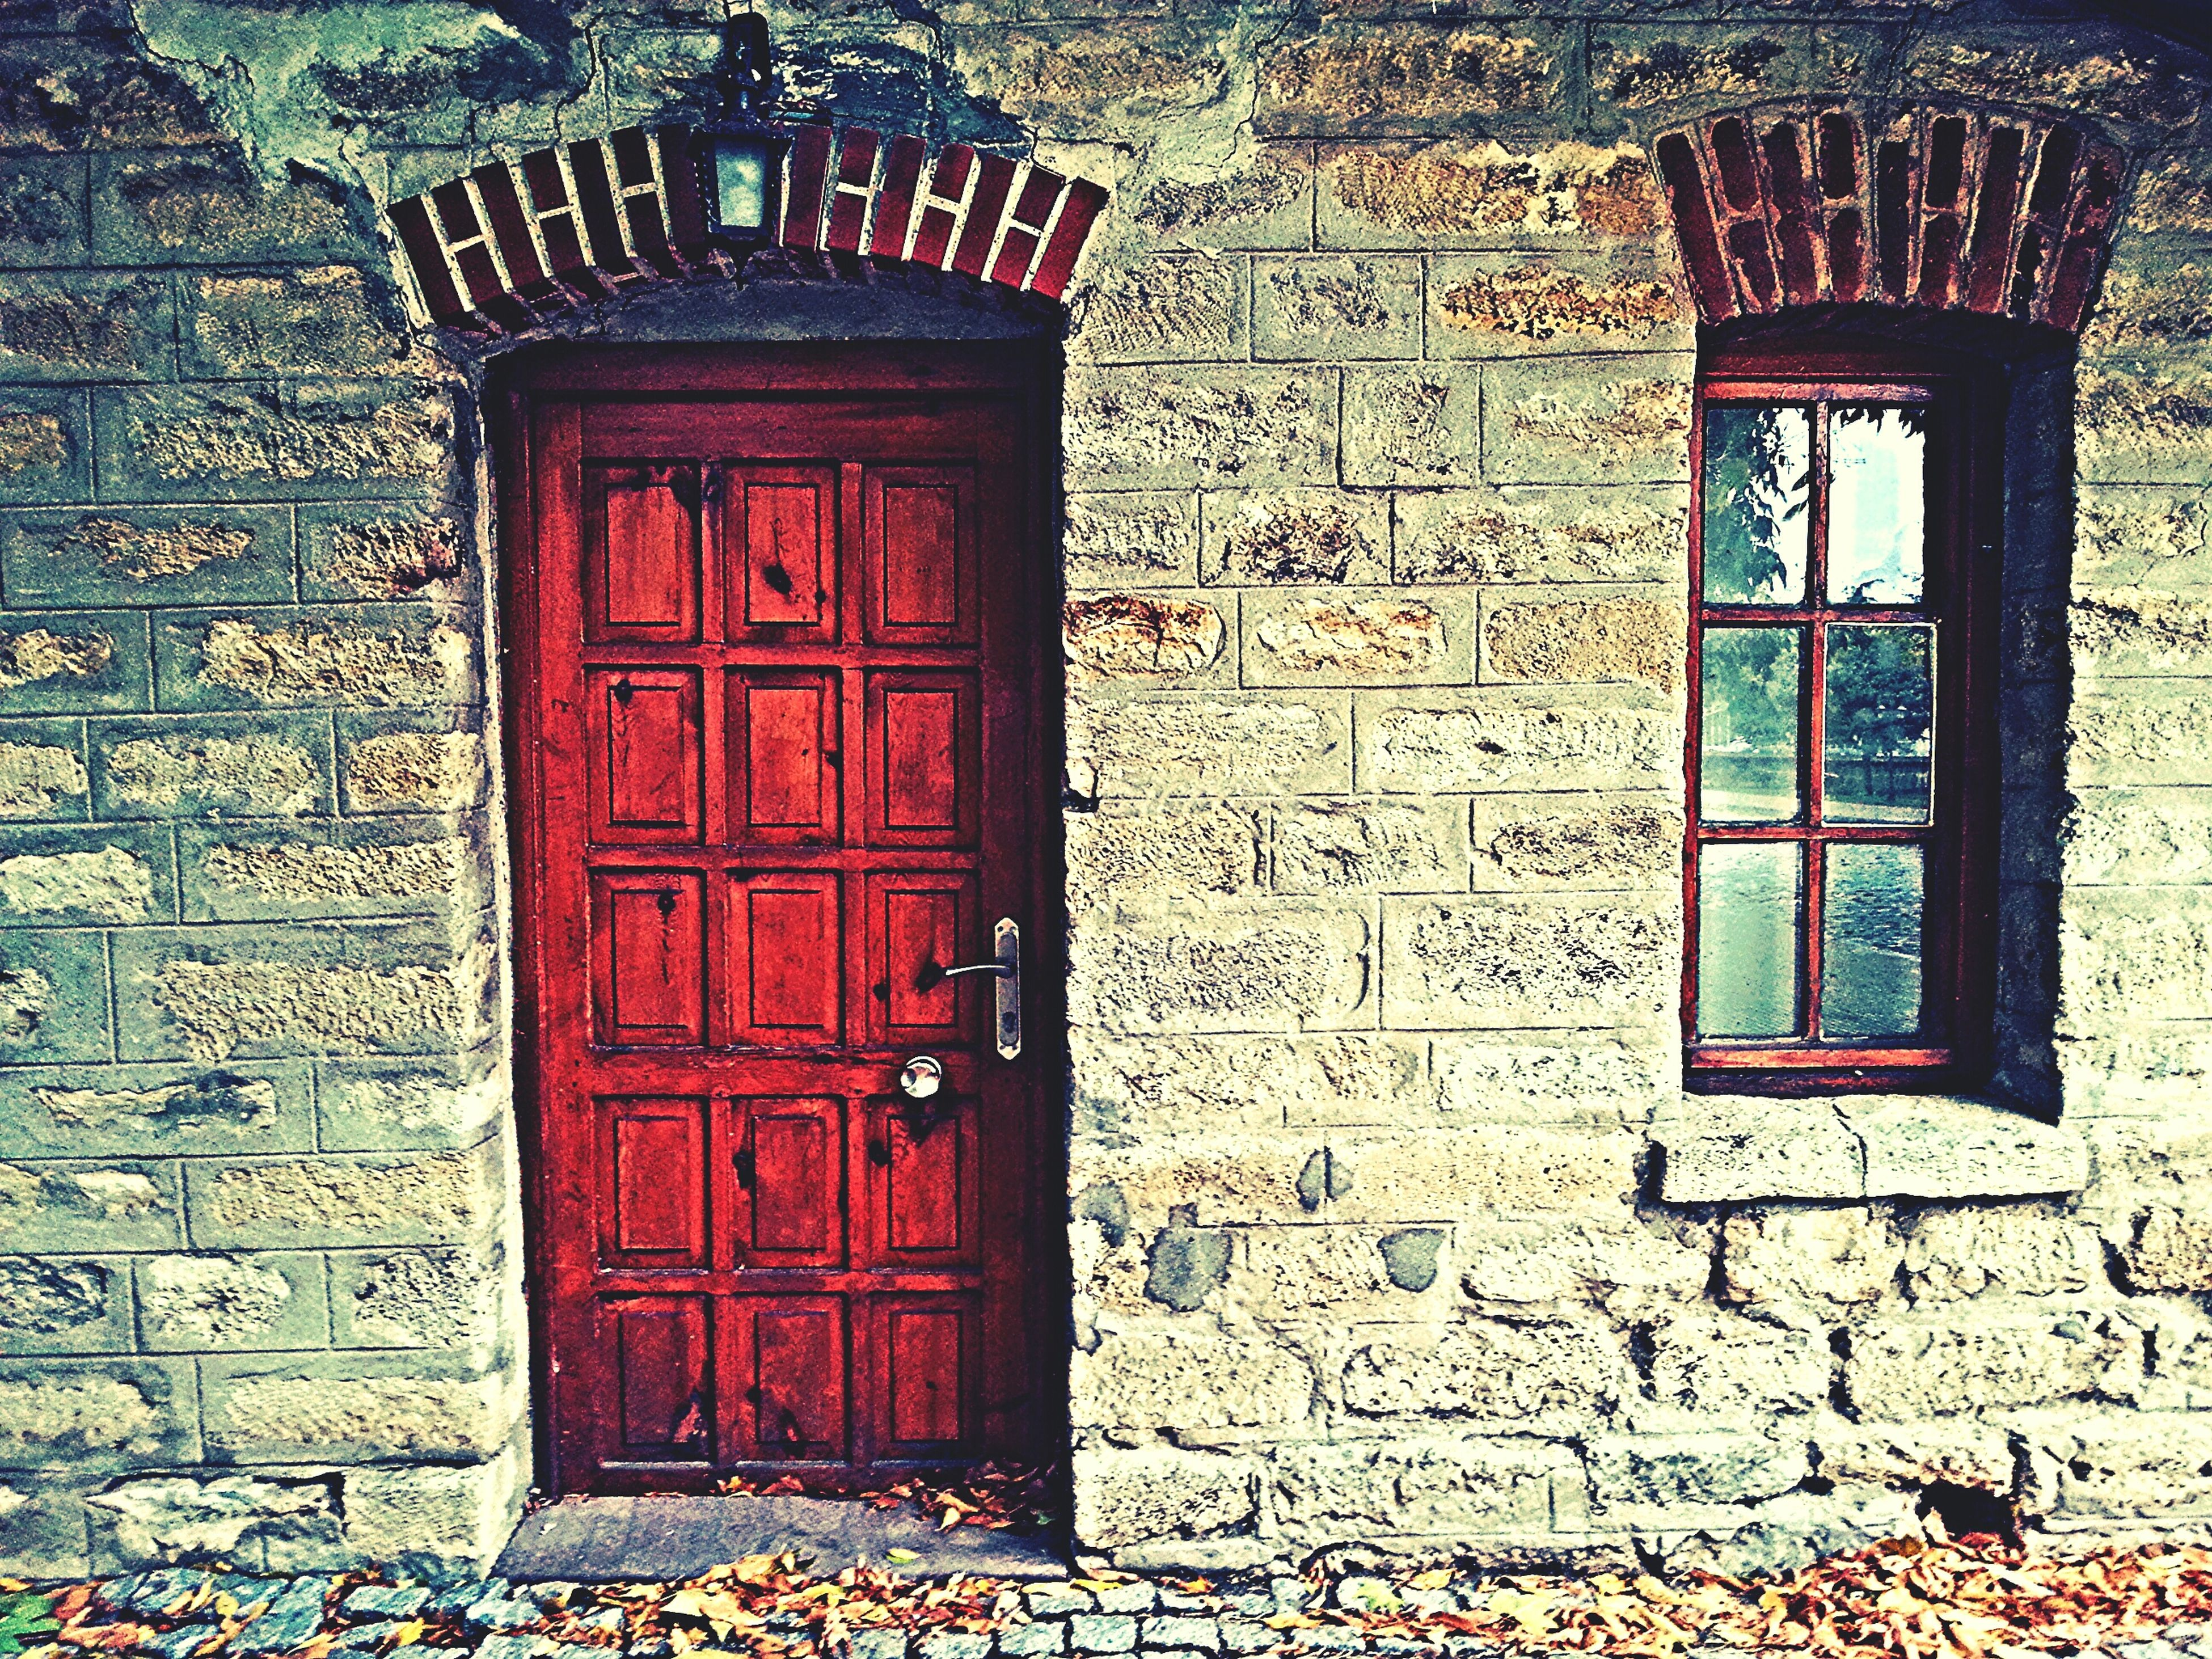 architecture, building exterior, built structure, door, closed, red, window, entrance, house, old, brick wall, wall - building feature, safety, wood - material, weathered, day, protection, wall, facade, outdoors